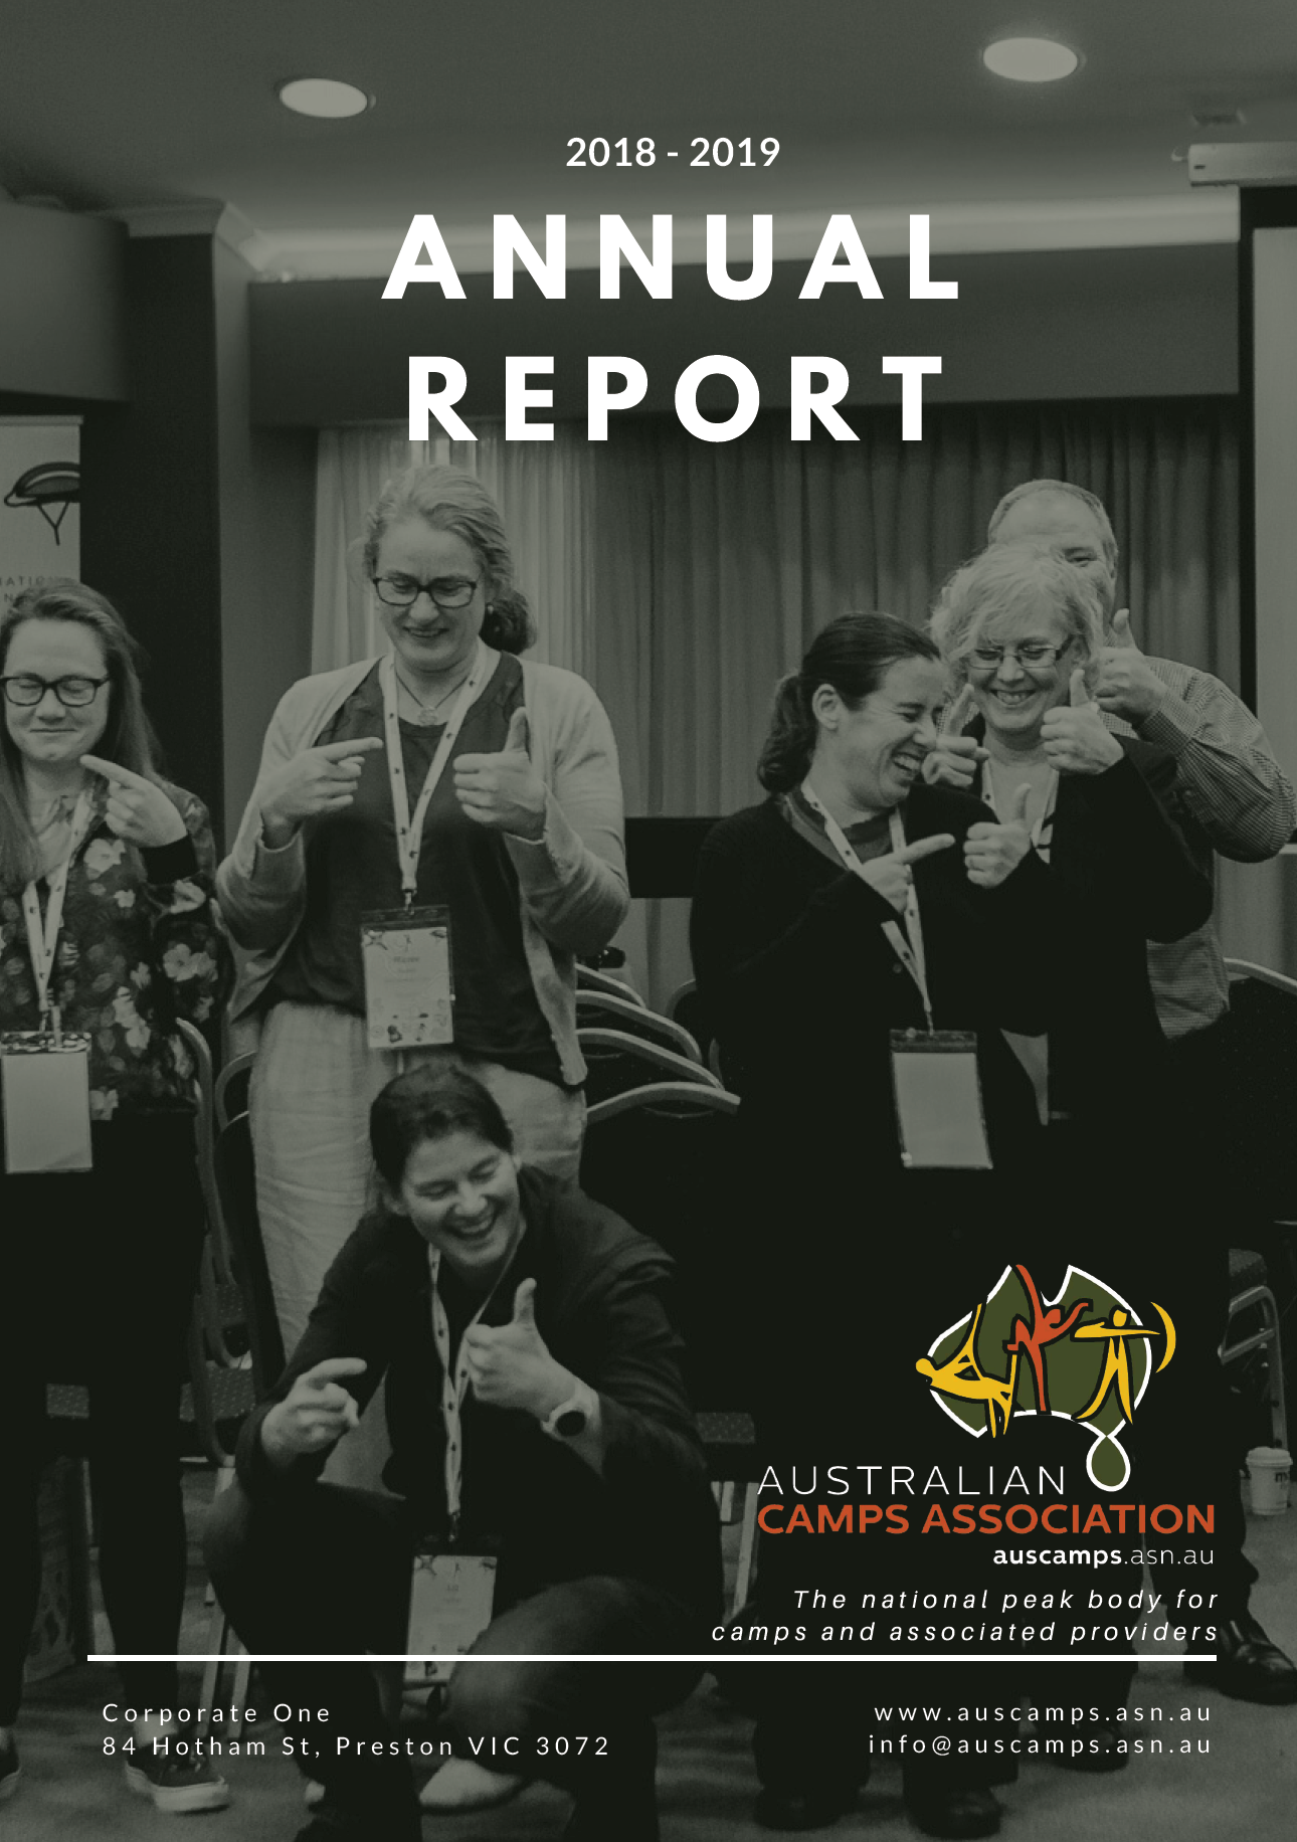 2018-2019 Annual Report COVER.png